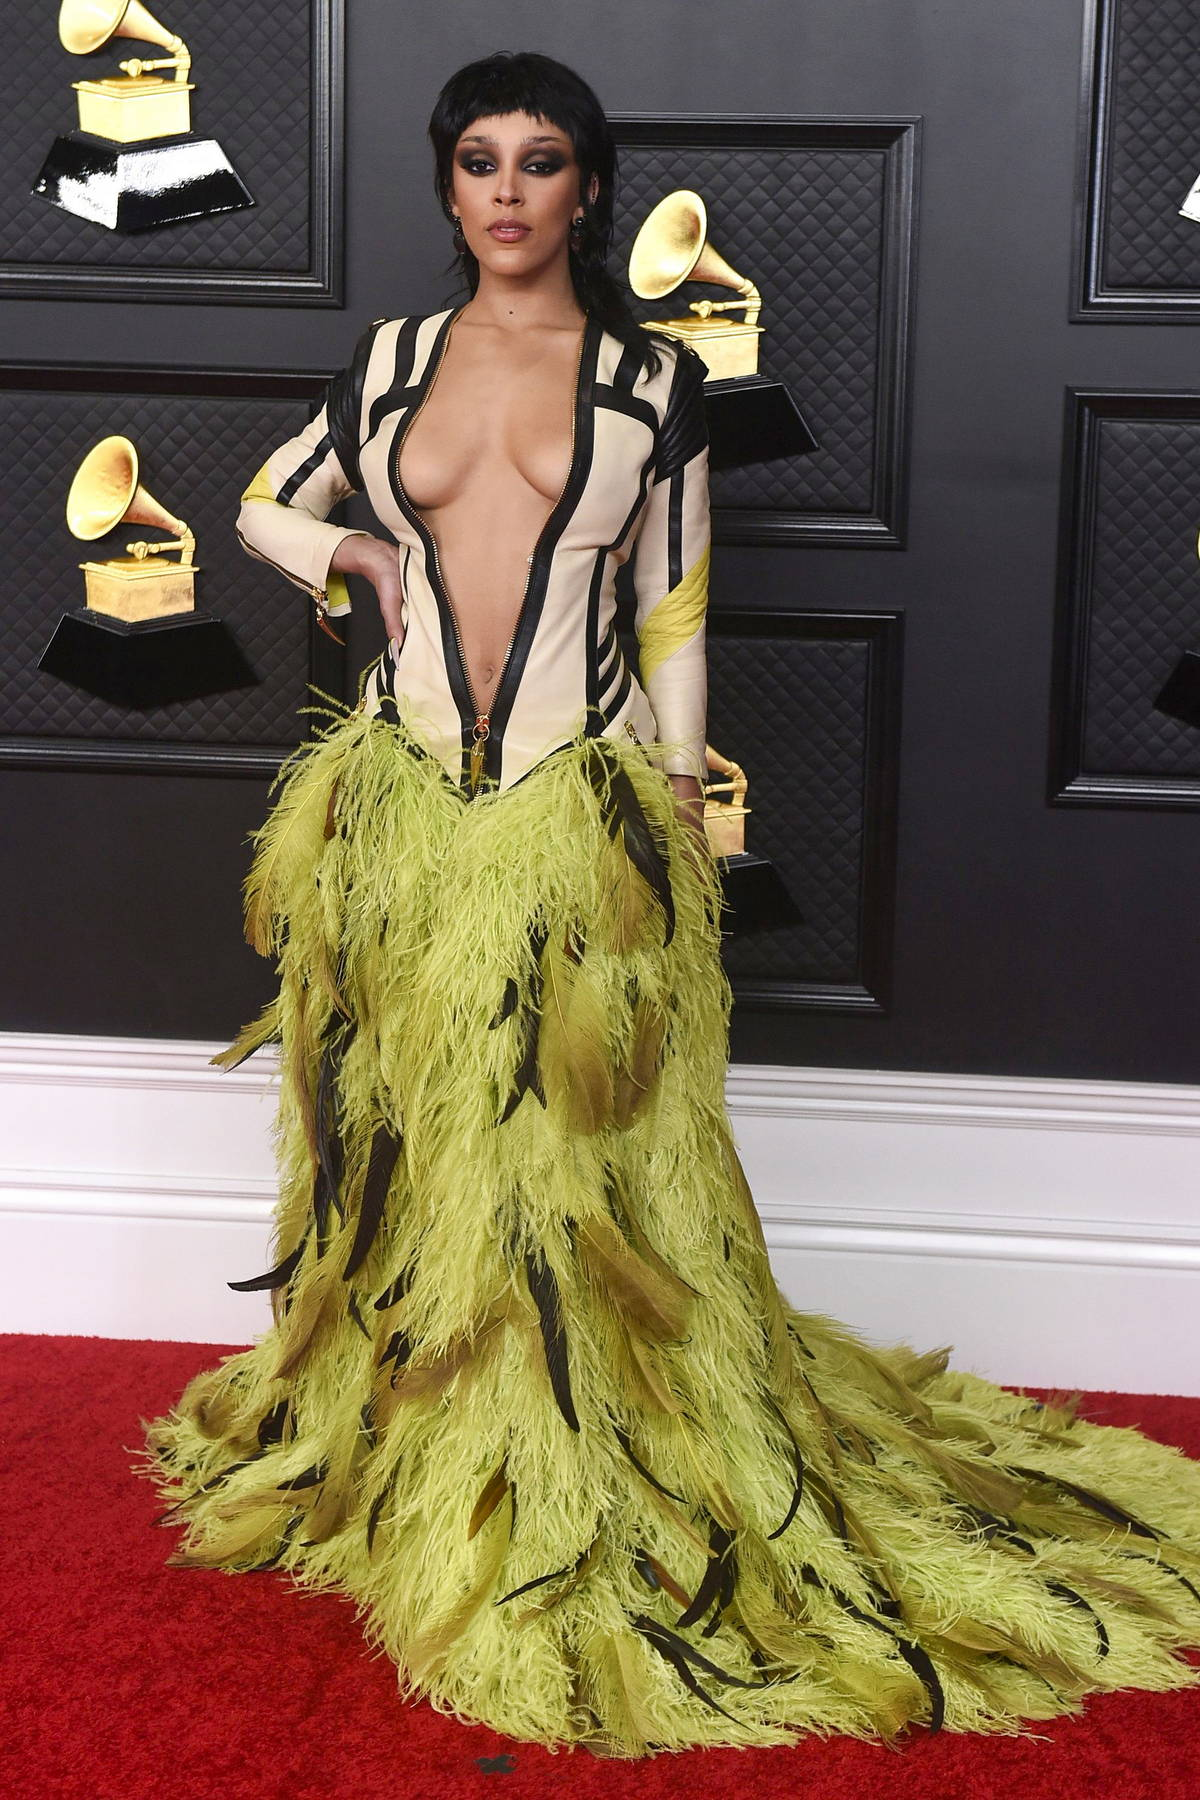 Doja Cat attends the 63rd Annual GRAMMY Awards at the STAPLES Center in Los Angeles